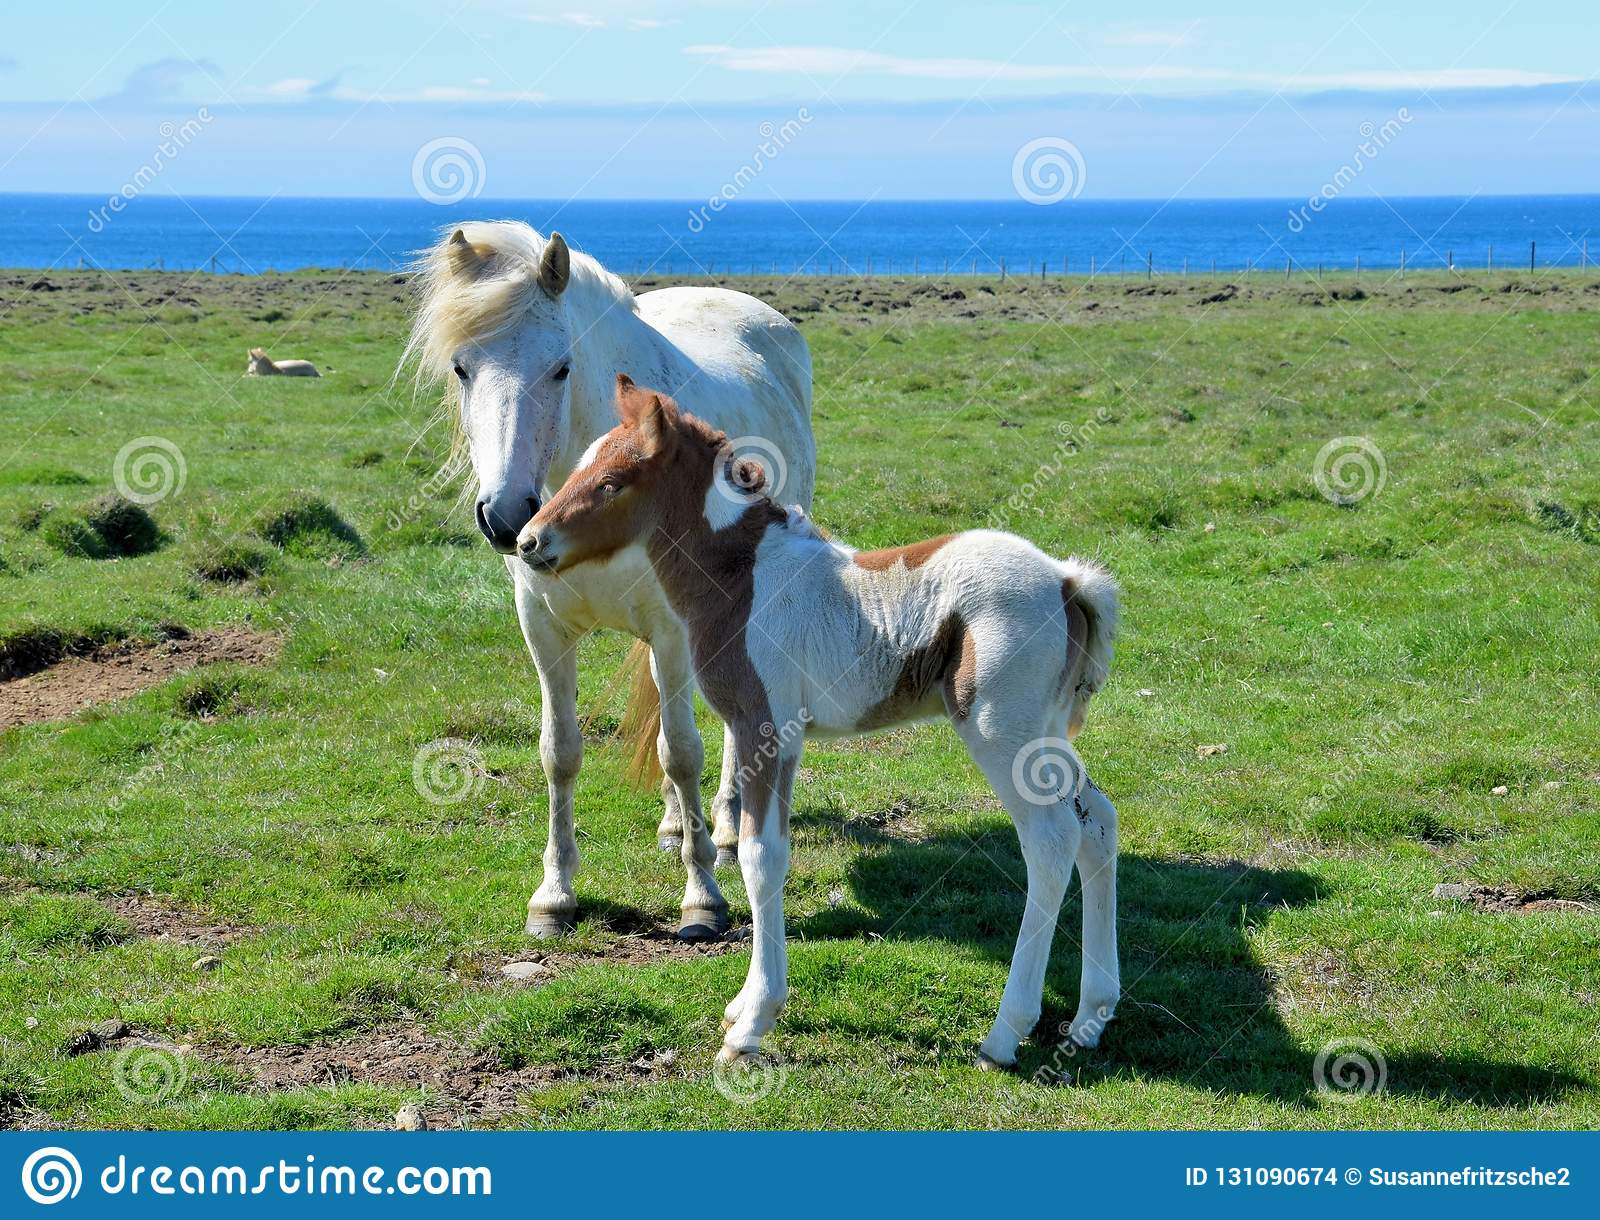 Icelandic mare with its cute pinto foal.